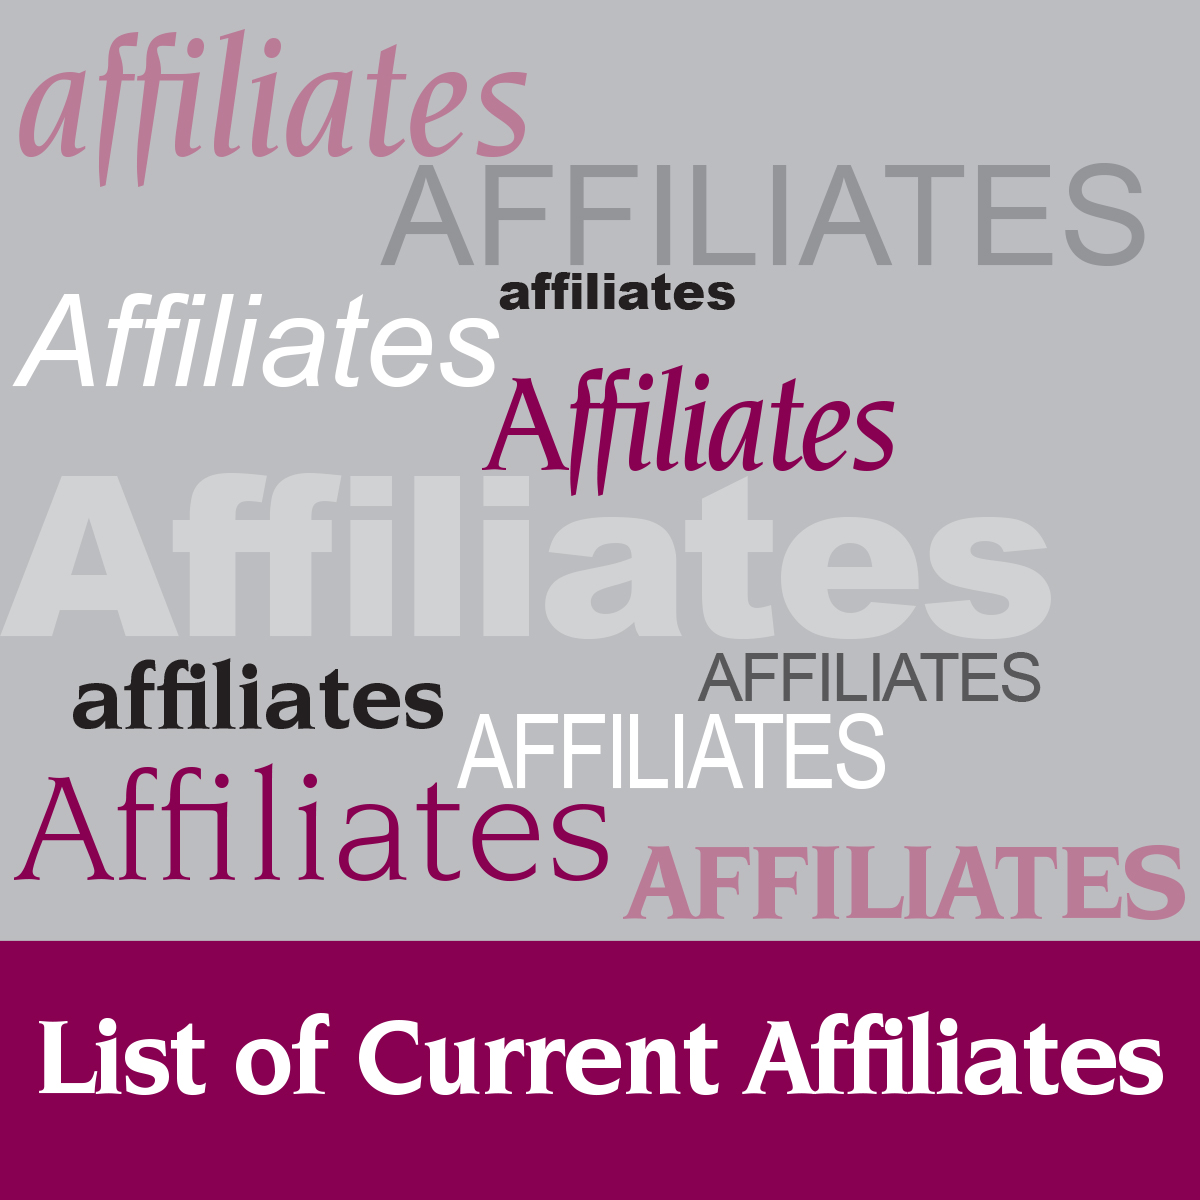 individualsectionphotos_AFFILIATES.jpg